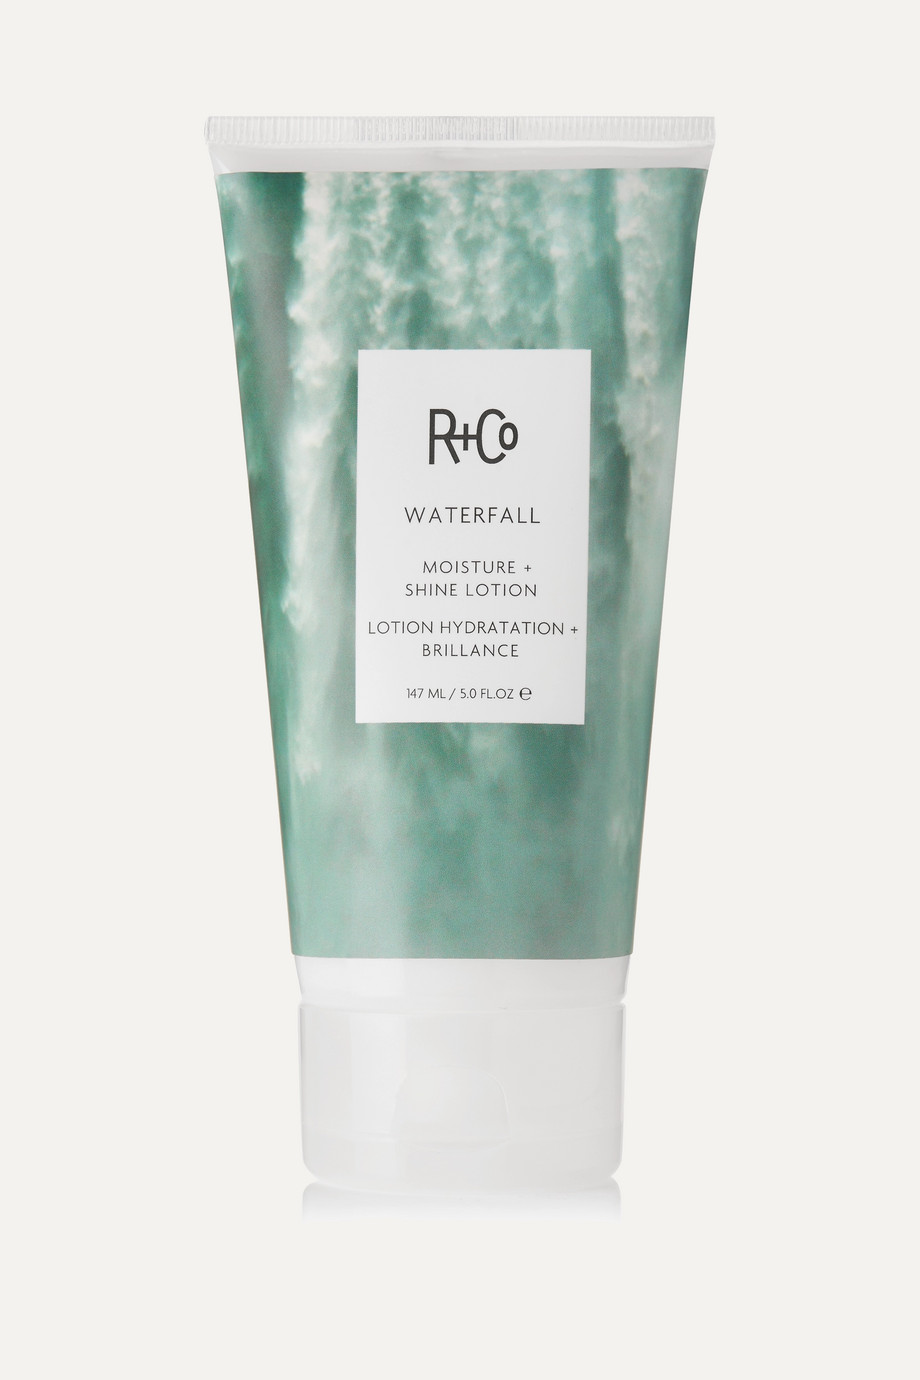 R+CO Waterfall Moisture + Shine Lotion, 147ml